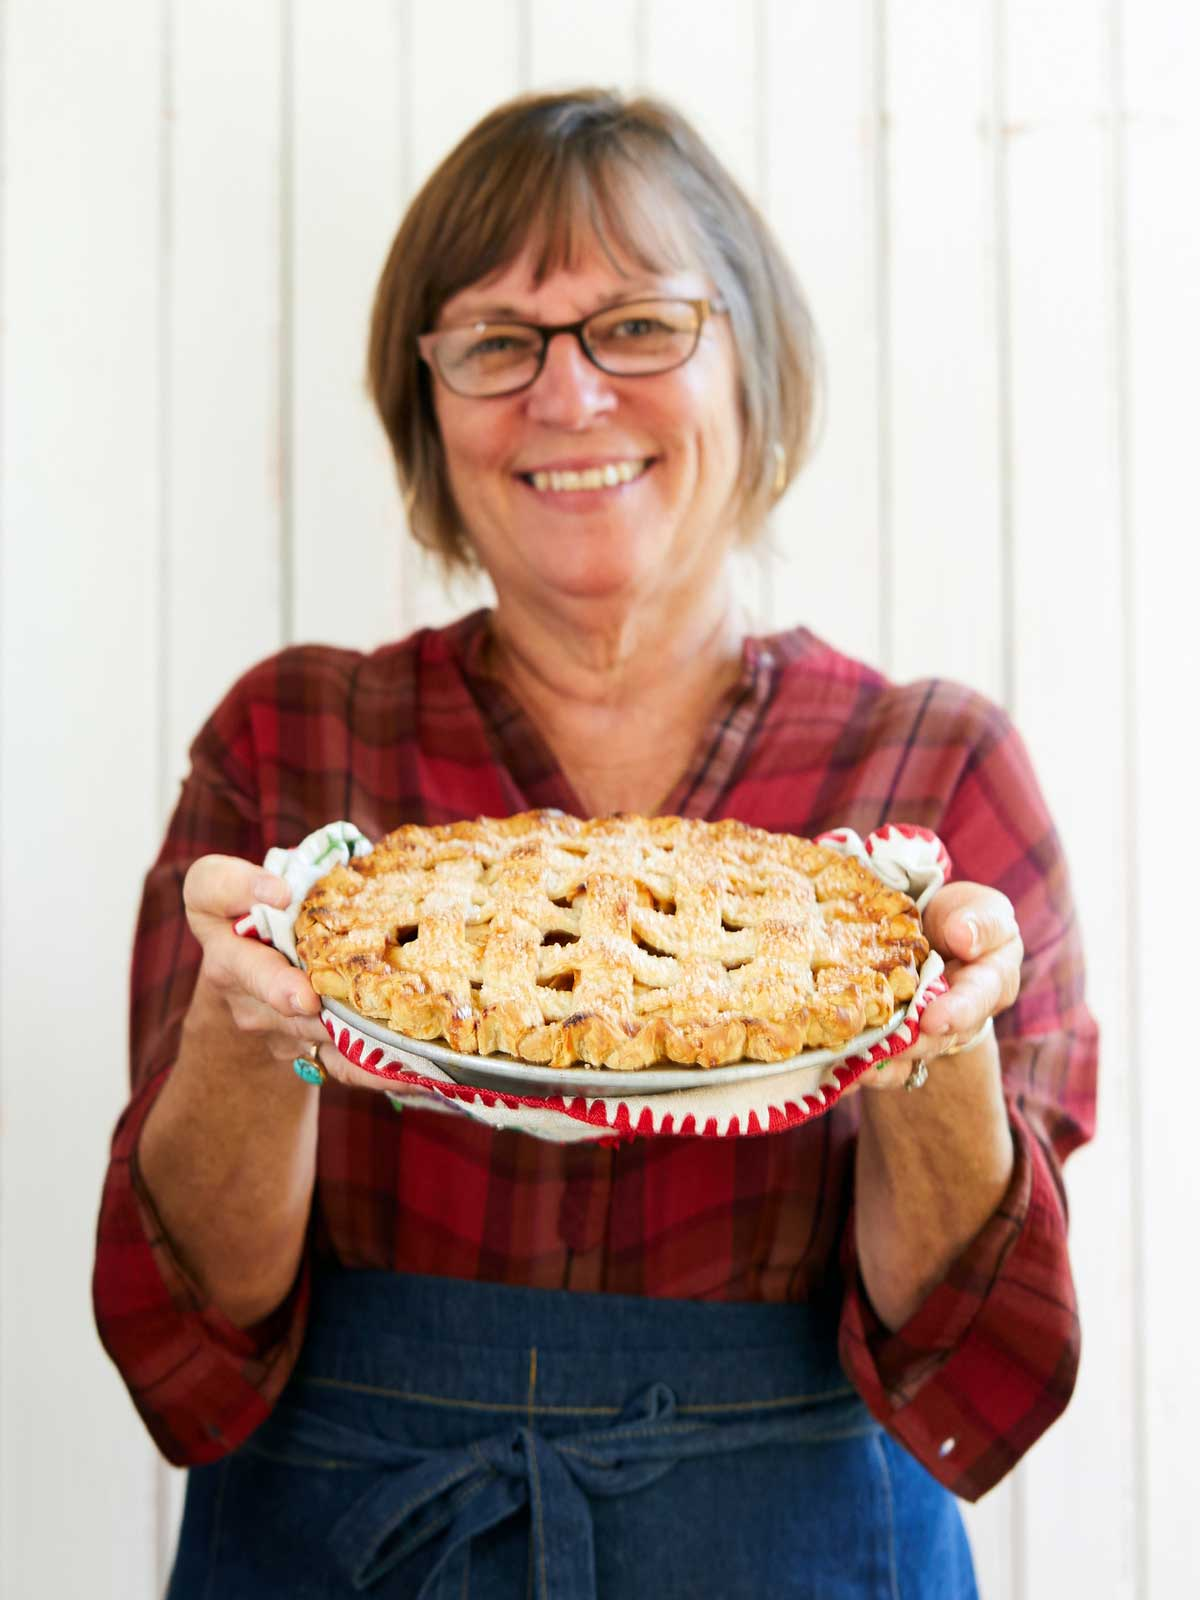 A woman holding out a lattice-topped apple pie, smiling